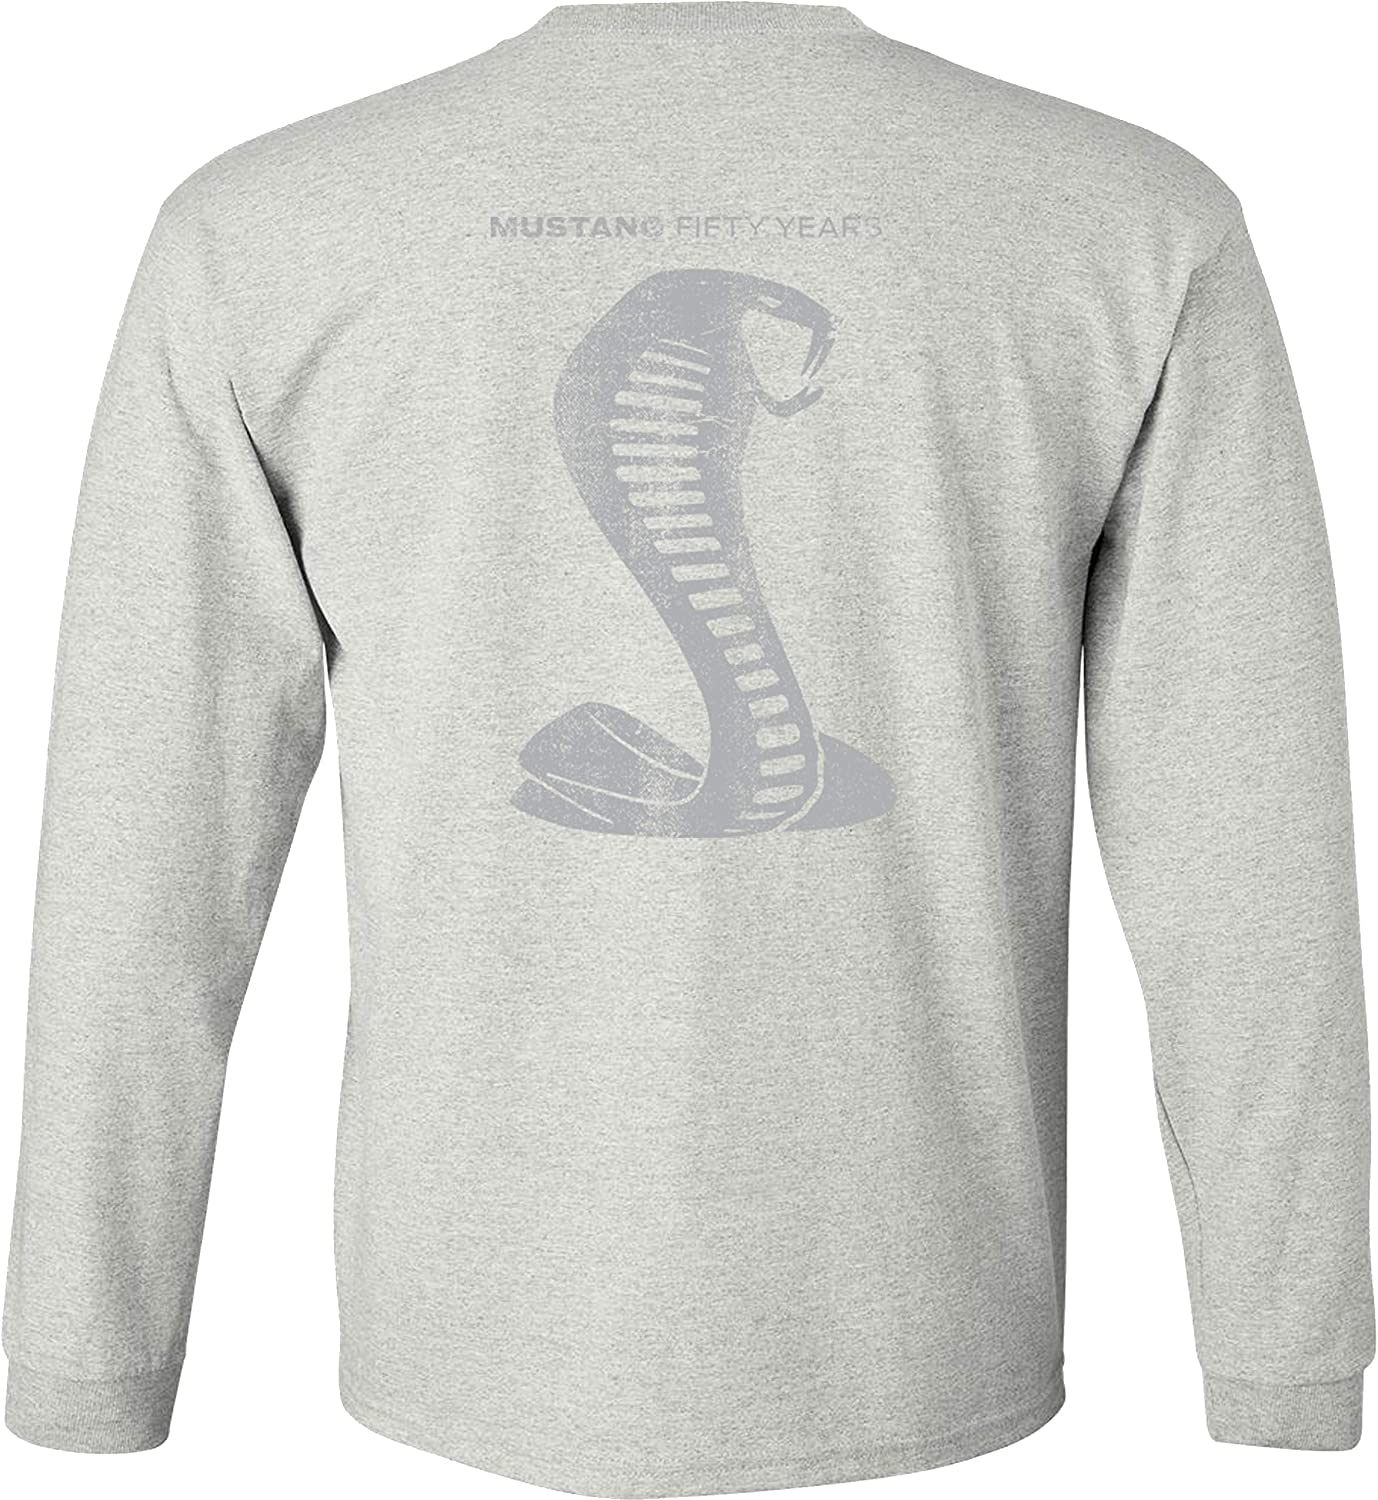 New Ford Mustang Shelby GT350 Long Sleeve Shirt